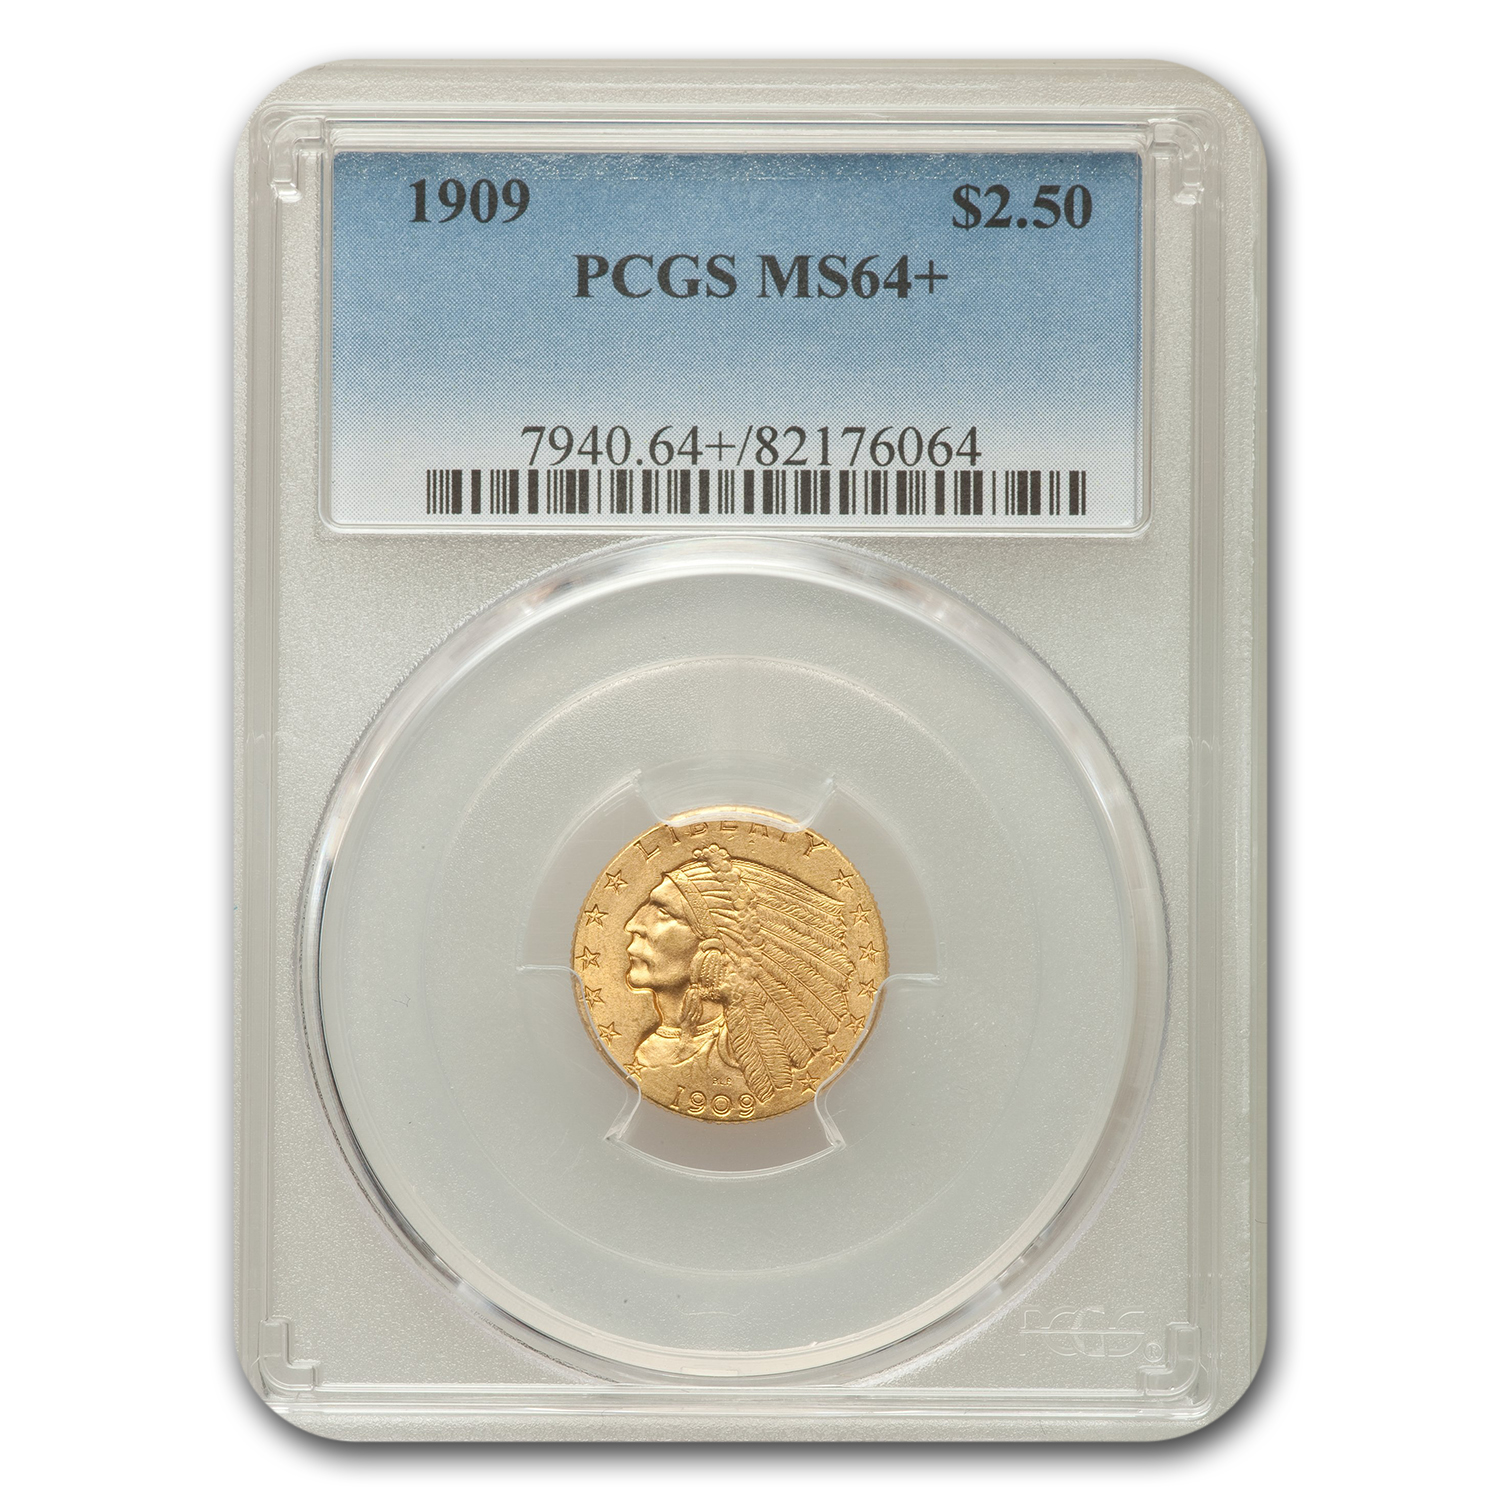 1909 $2.50 Indian Quarter Eagle MS-64+ PCGS